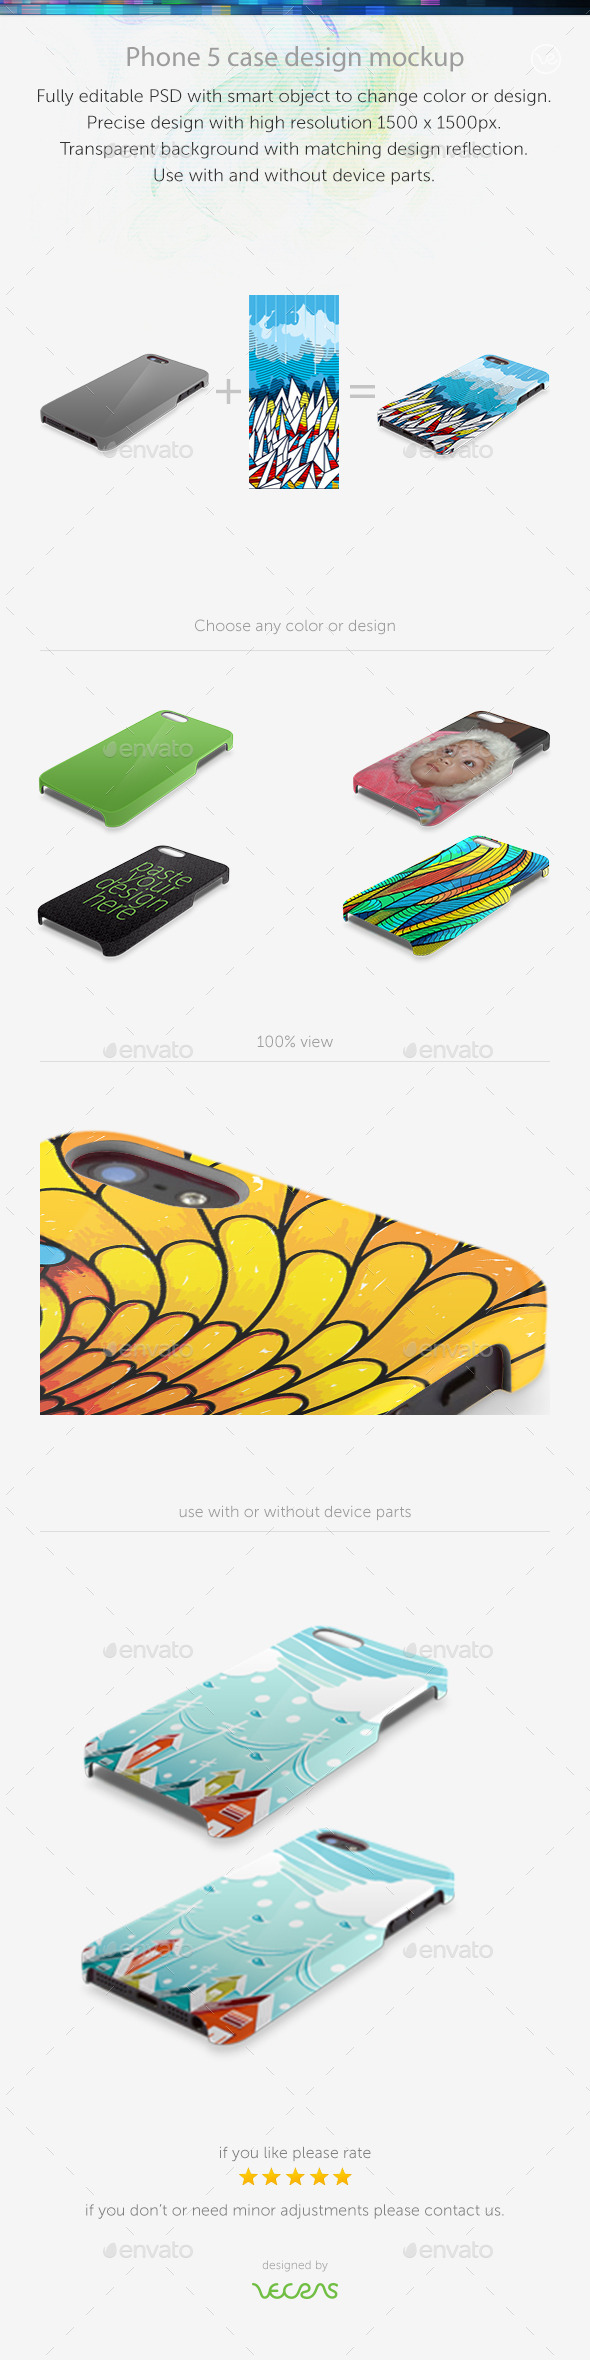 Phone 5 Hard Case Skin Mock up